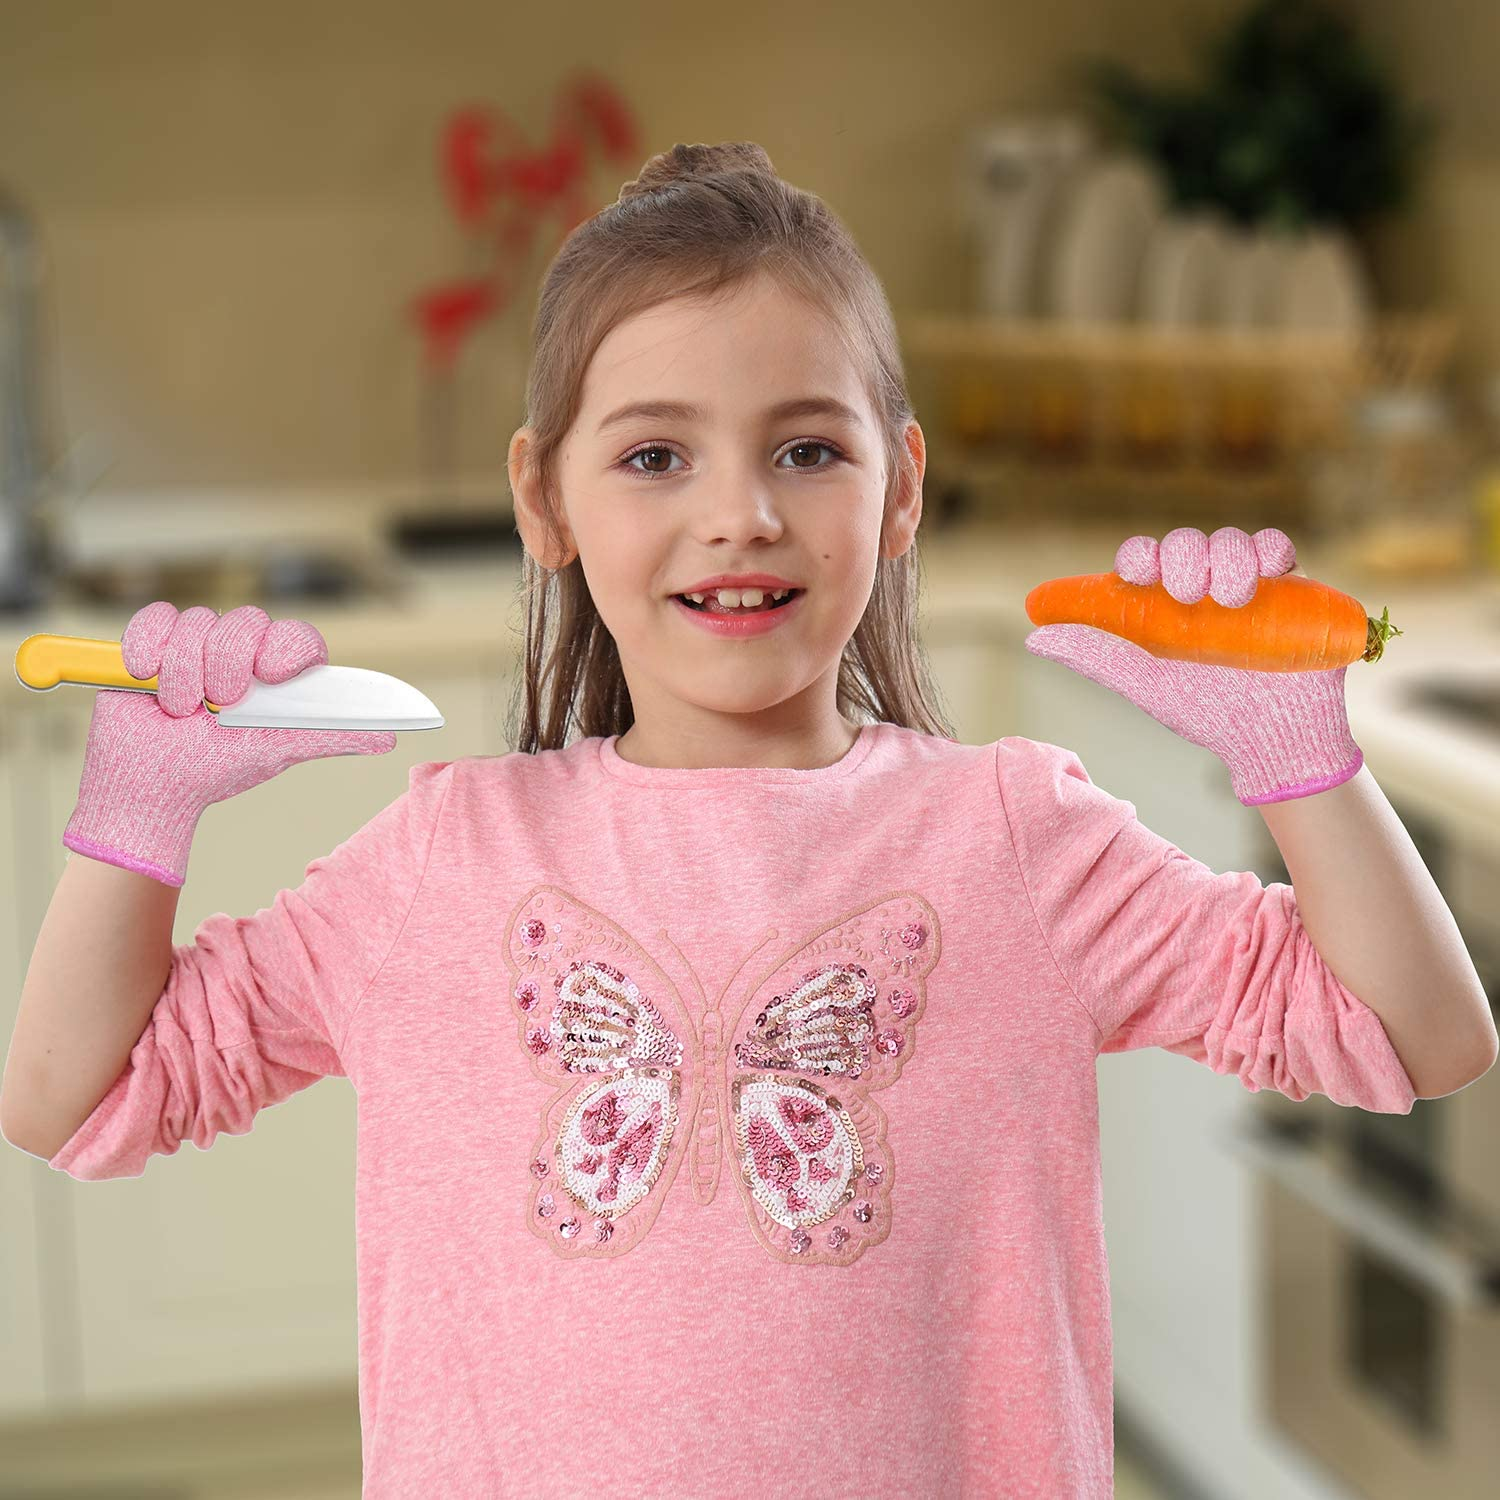 EvridWear Kids Cut Resistant Gloves for Kitchen Use, Oyster Shucking, Scraping, Slicing, Crafts, DIY, Garden and Yard works. Children Food Grade Kevlar Safe Hands from Knife and Tool S (4-7YRS) Pink: Clothing